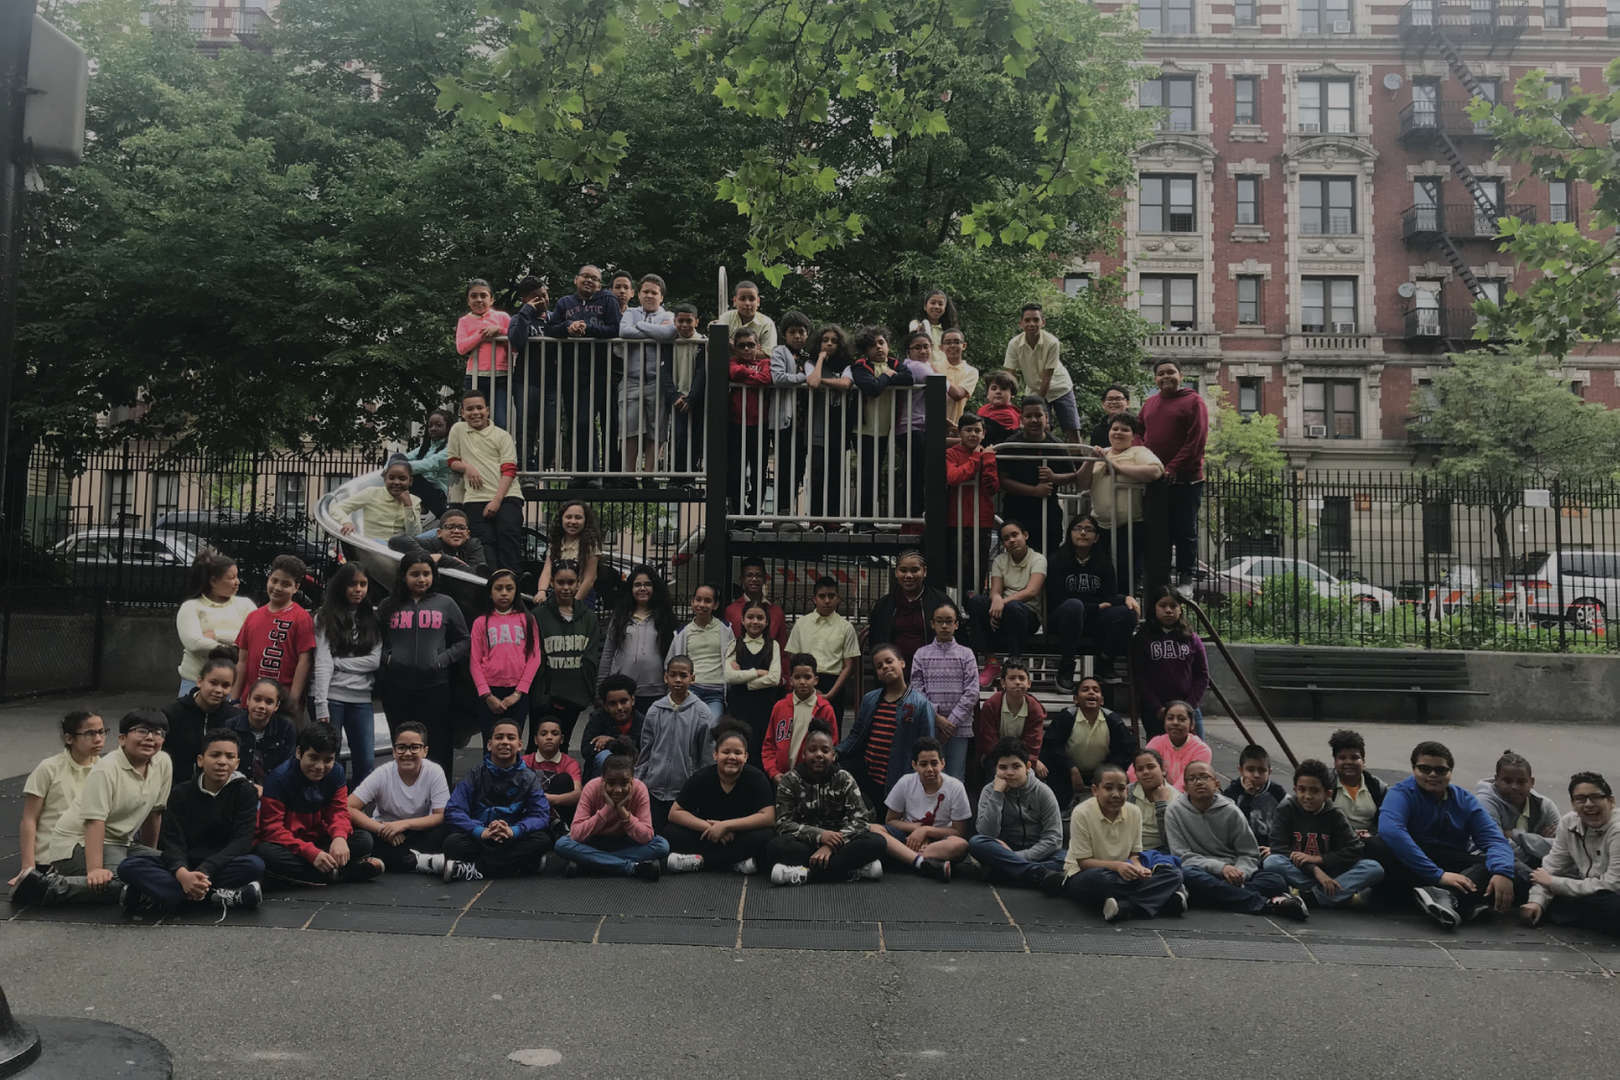 Students gathered on playground